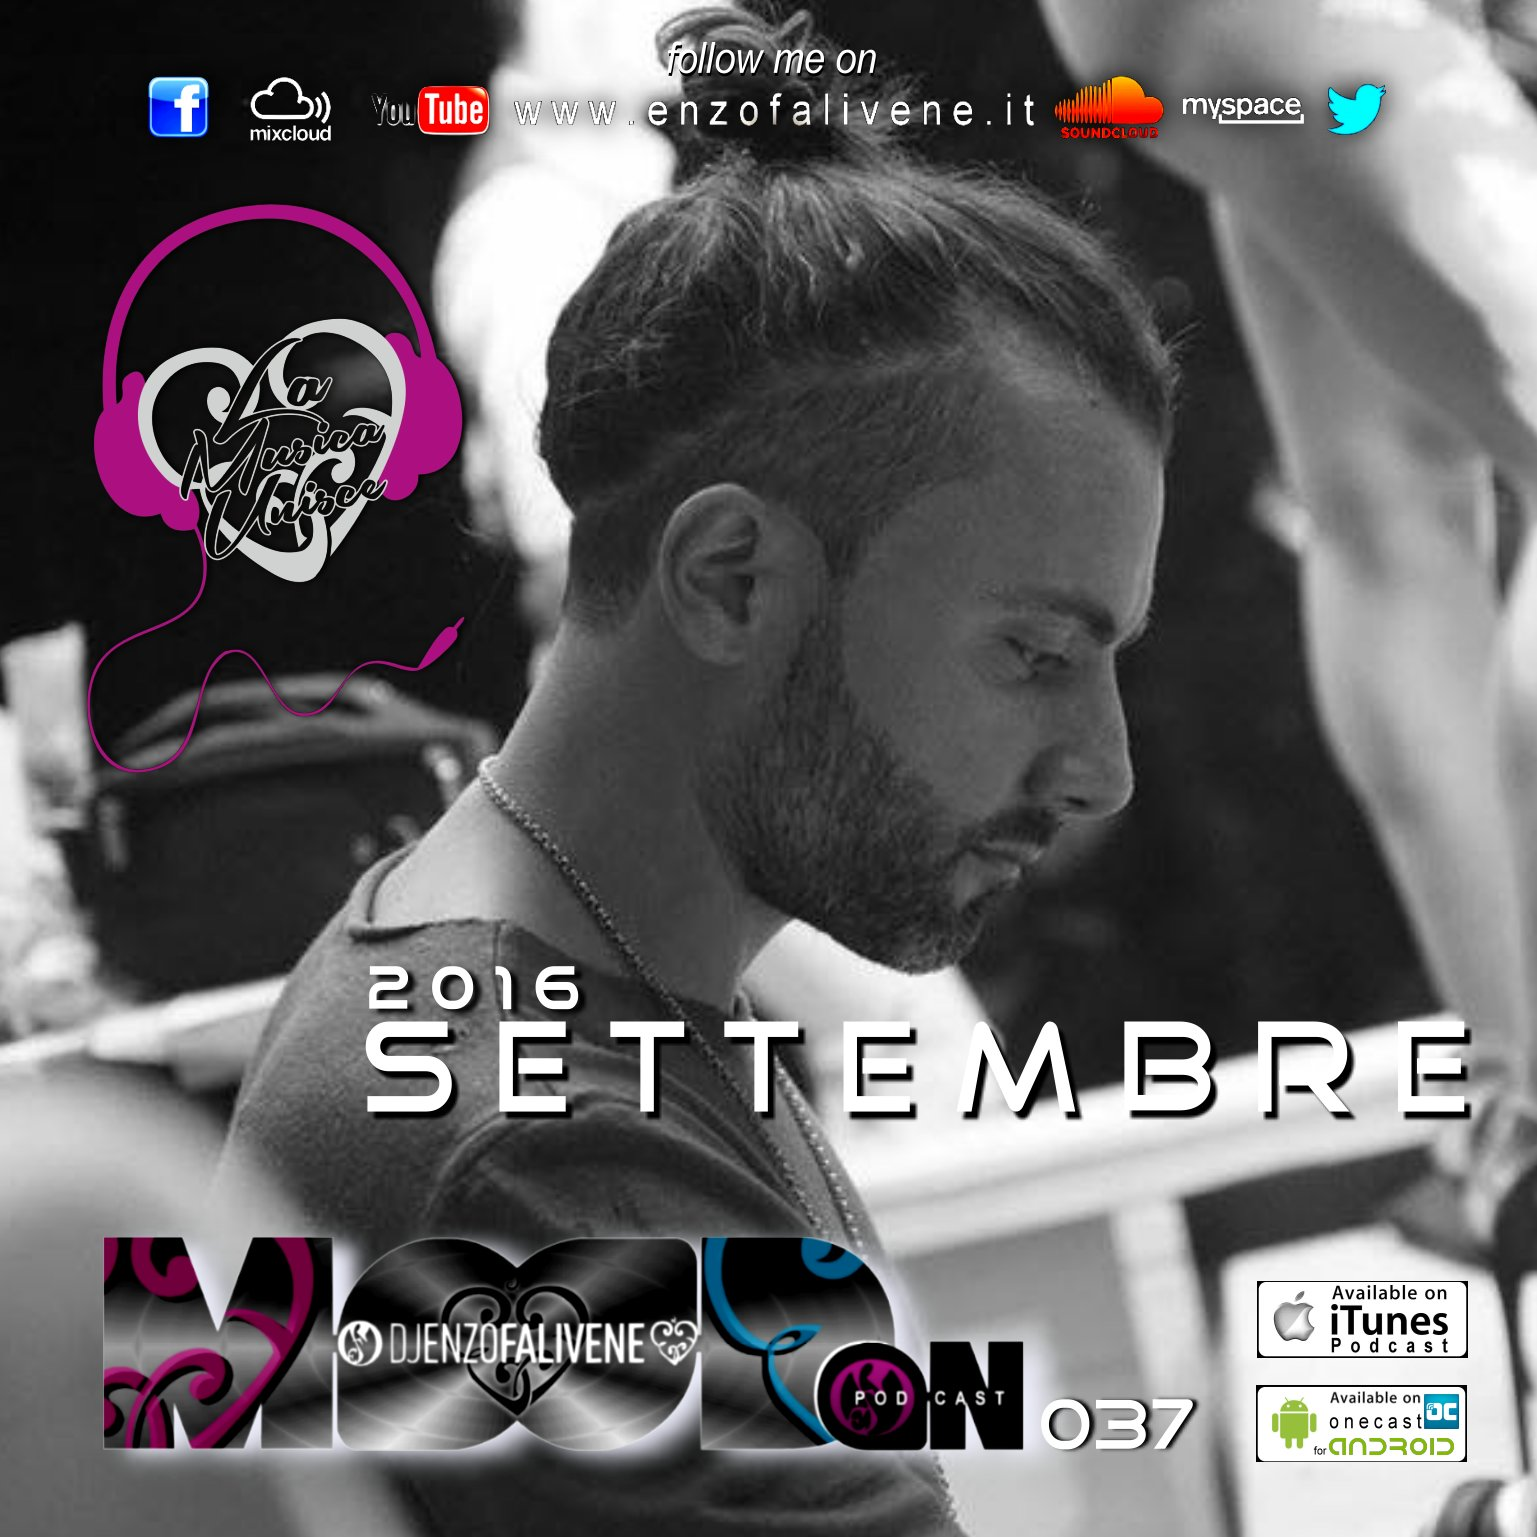 Dj Enzo Falivene - Mood On 037 Settembre 2016